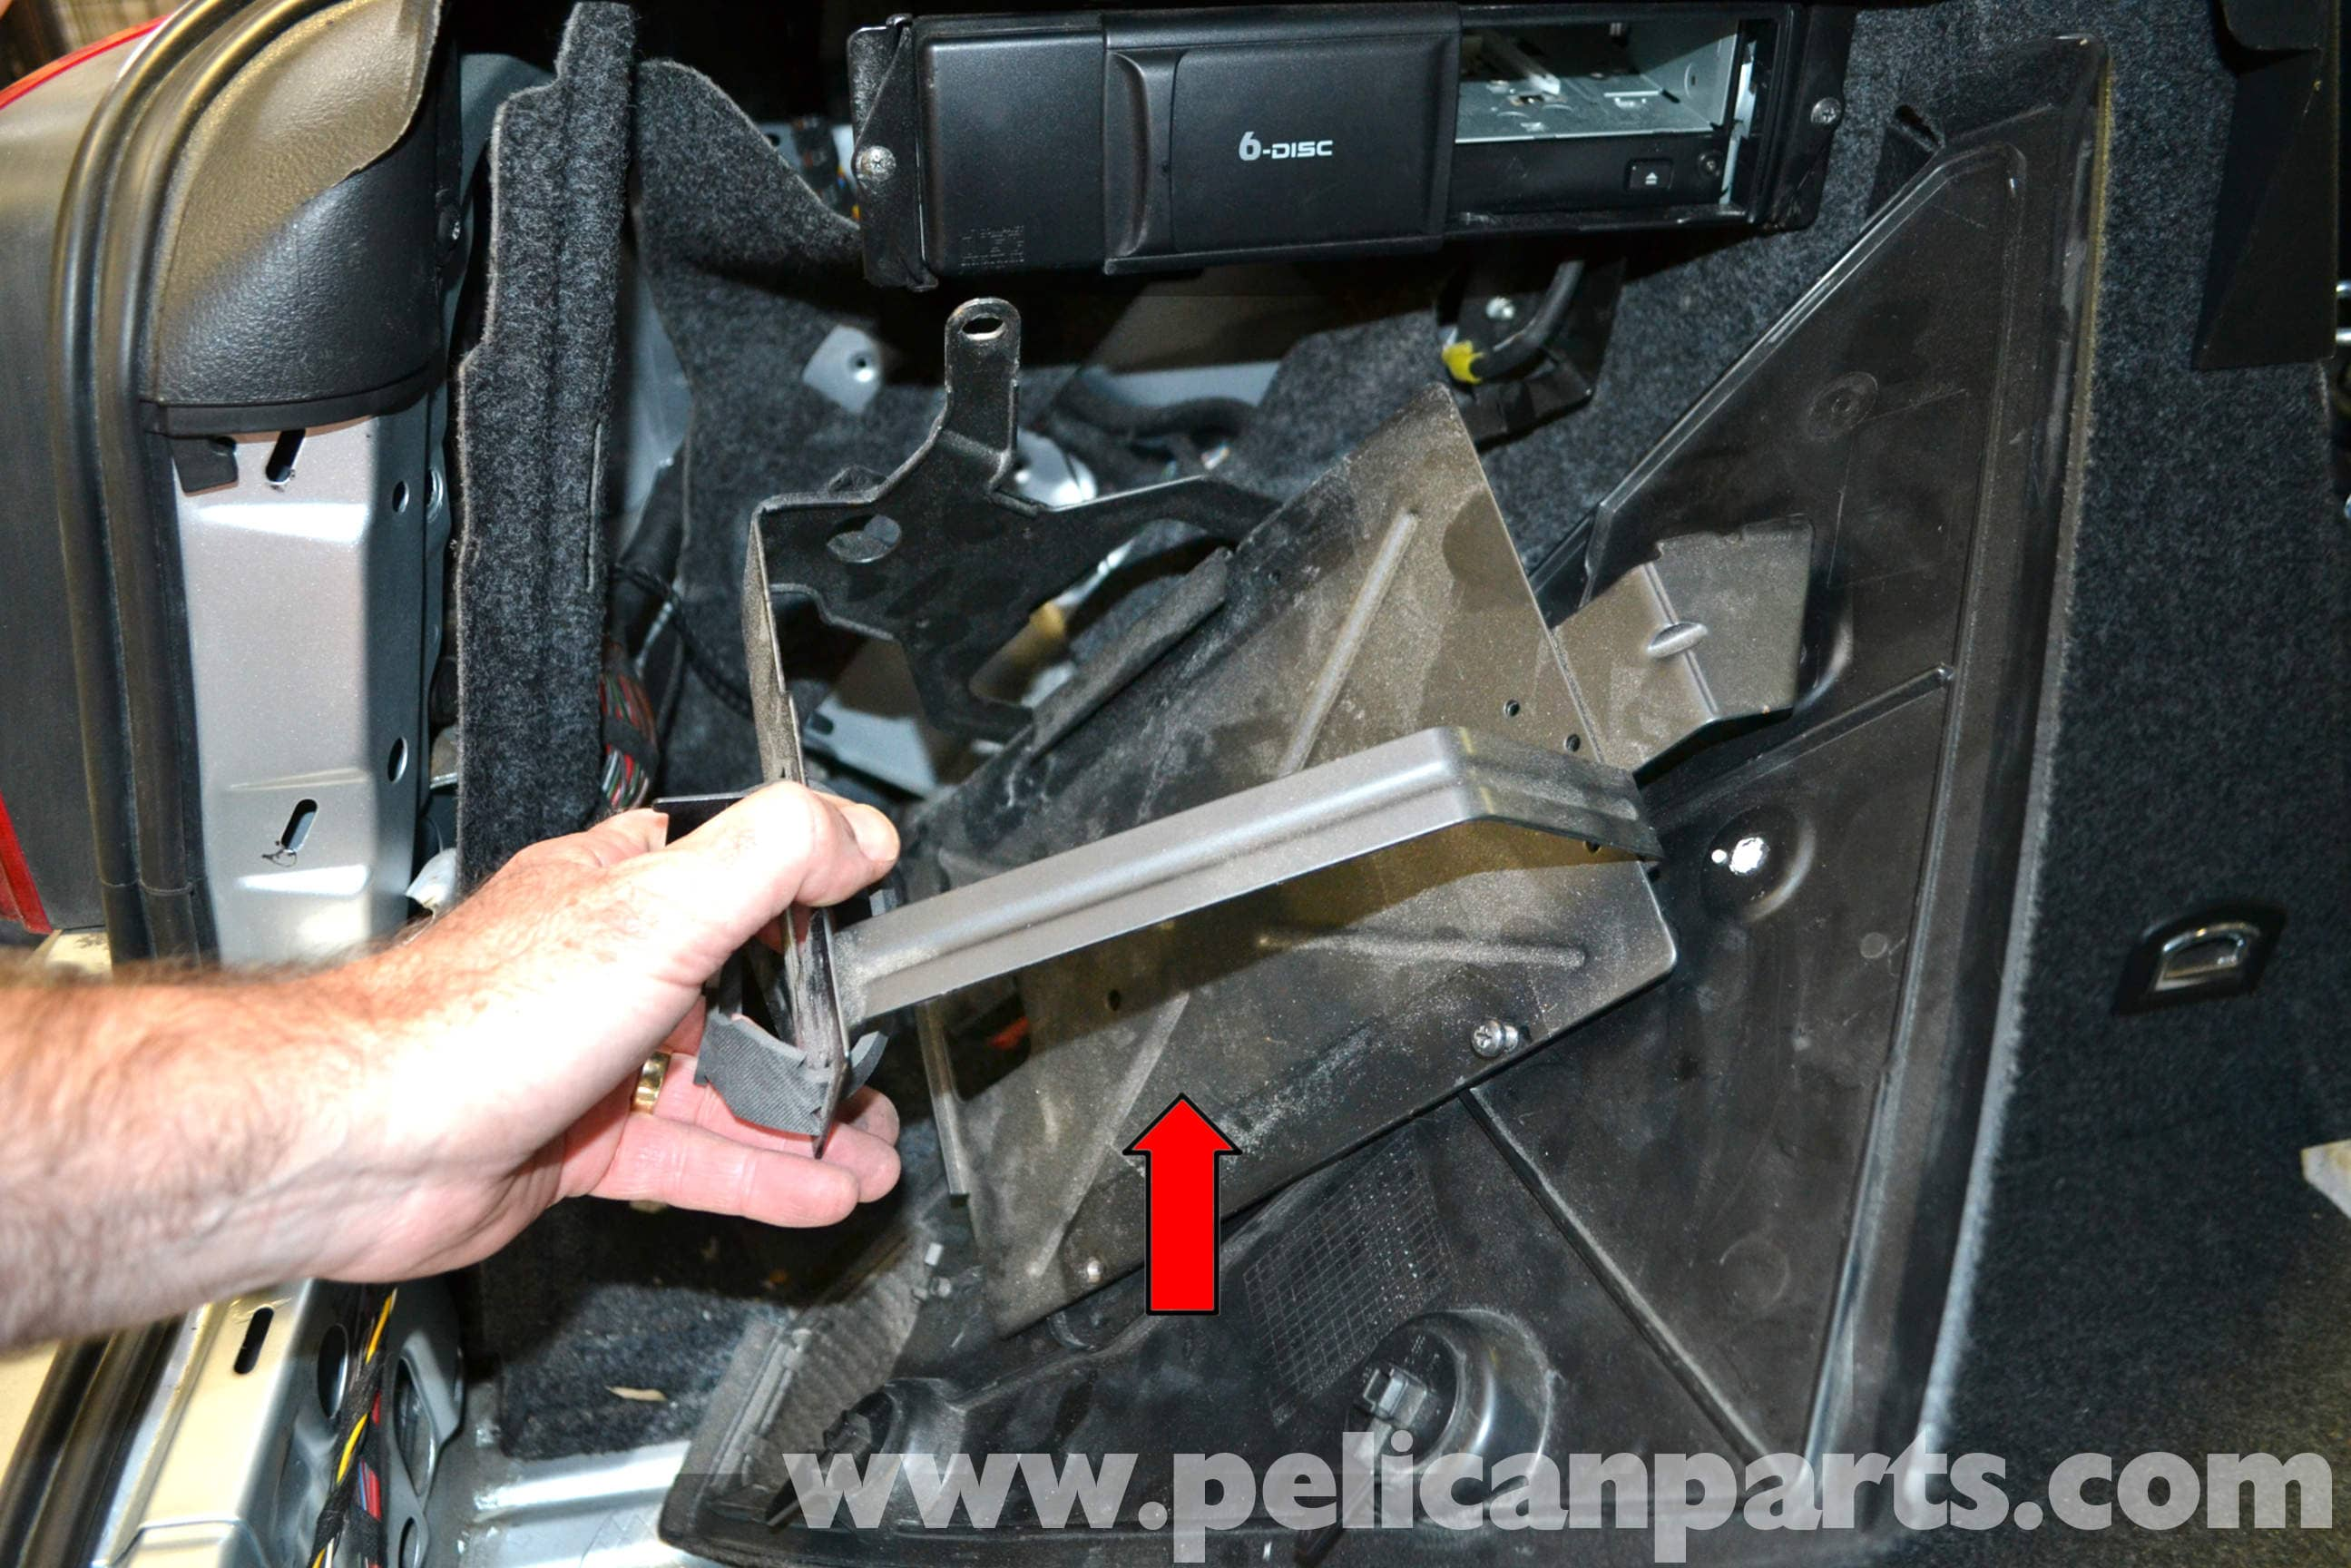 Volkswagen Golf Gti Mk Iv Taillight Bulbs And Assembly Replacement 2012 Jetta Tdi Fuse Relay Diagram Large Image Extra